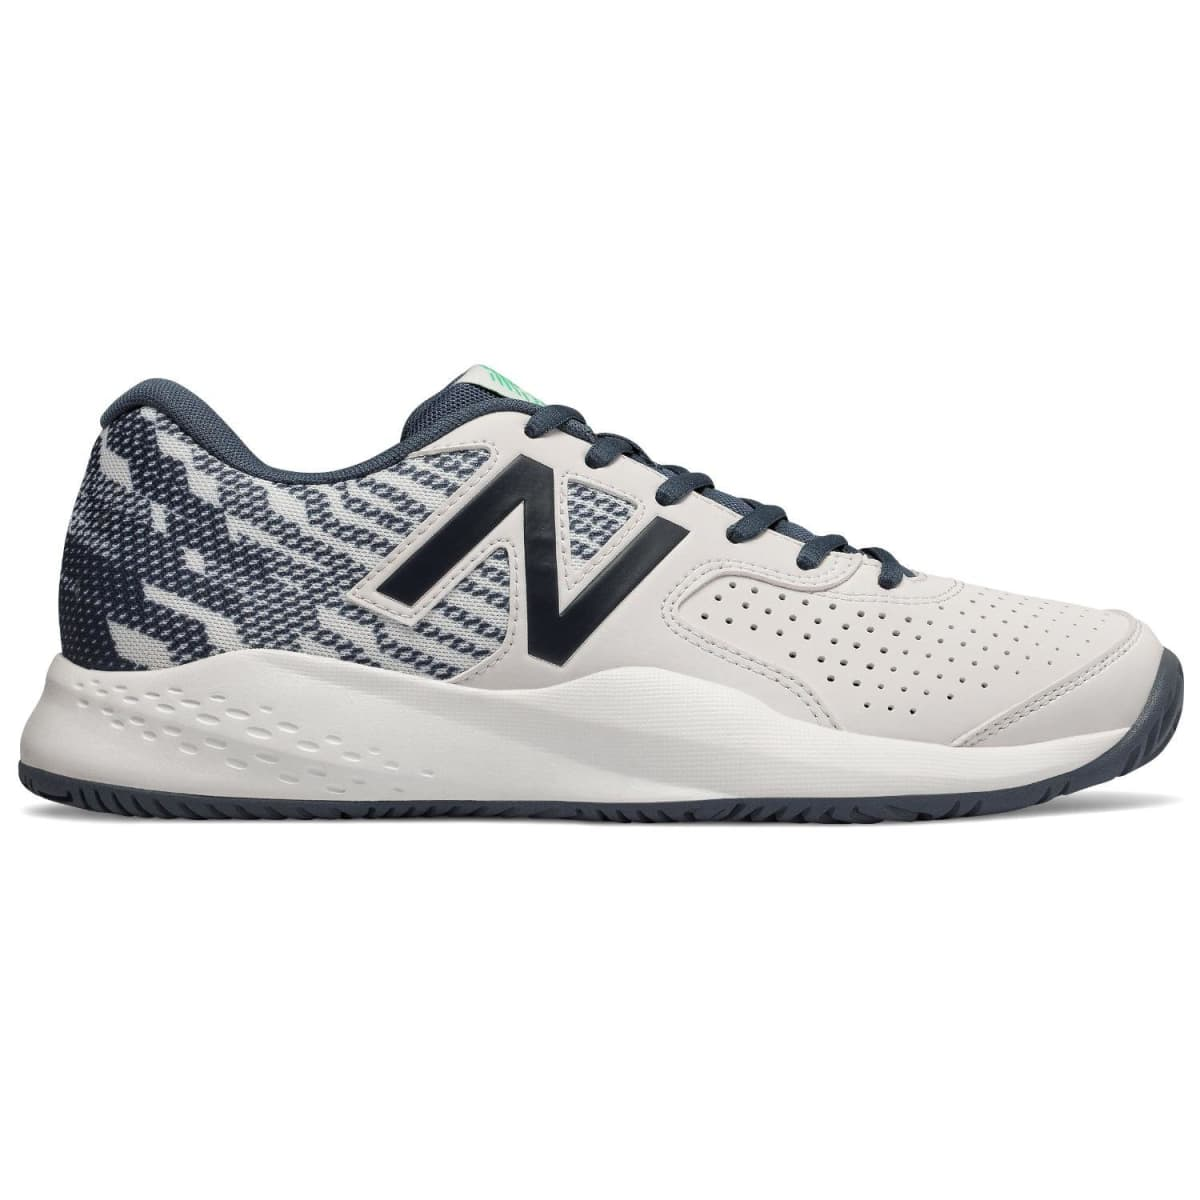 new styles 76e8d d3cd3 New Balance 696 V3 Tennis Shoes